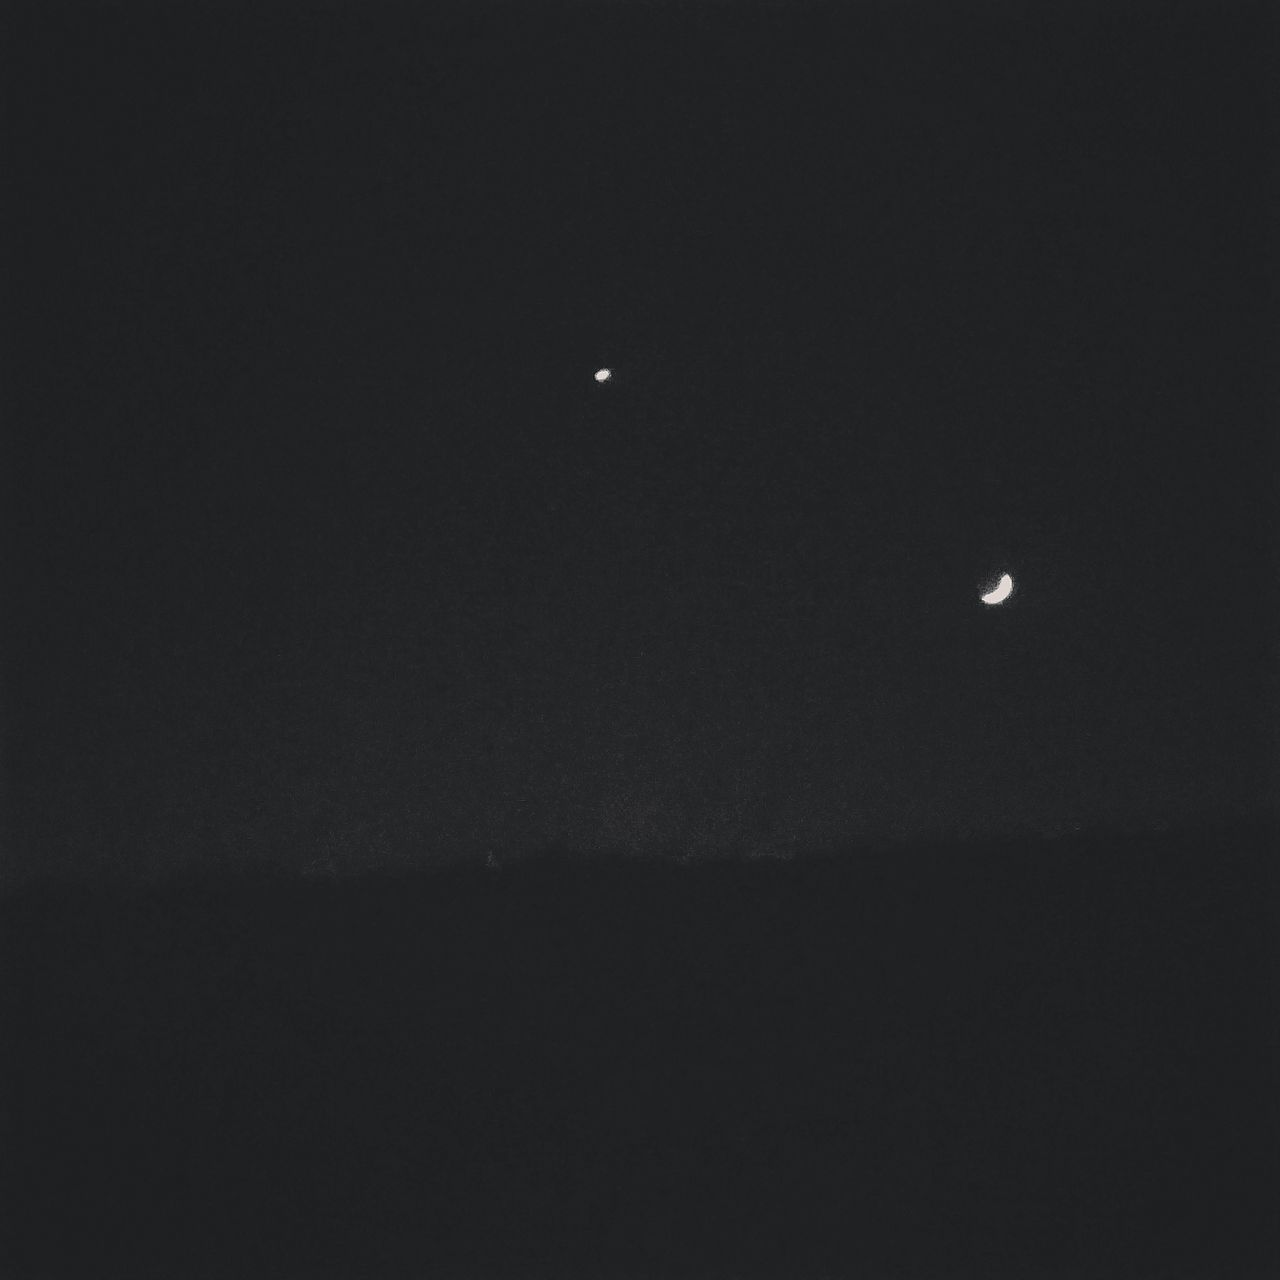 Astronomy Dark Moon Space And Astronomy Night Sky Crescent Nature Space Star - Space No People Flying Science Outdoors Scenics Constellation Galaxy Beauty In Nature Space Exploration Solar Eclipse EyeEmNewHere Central Scotland